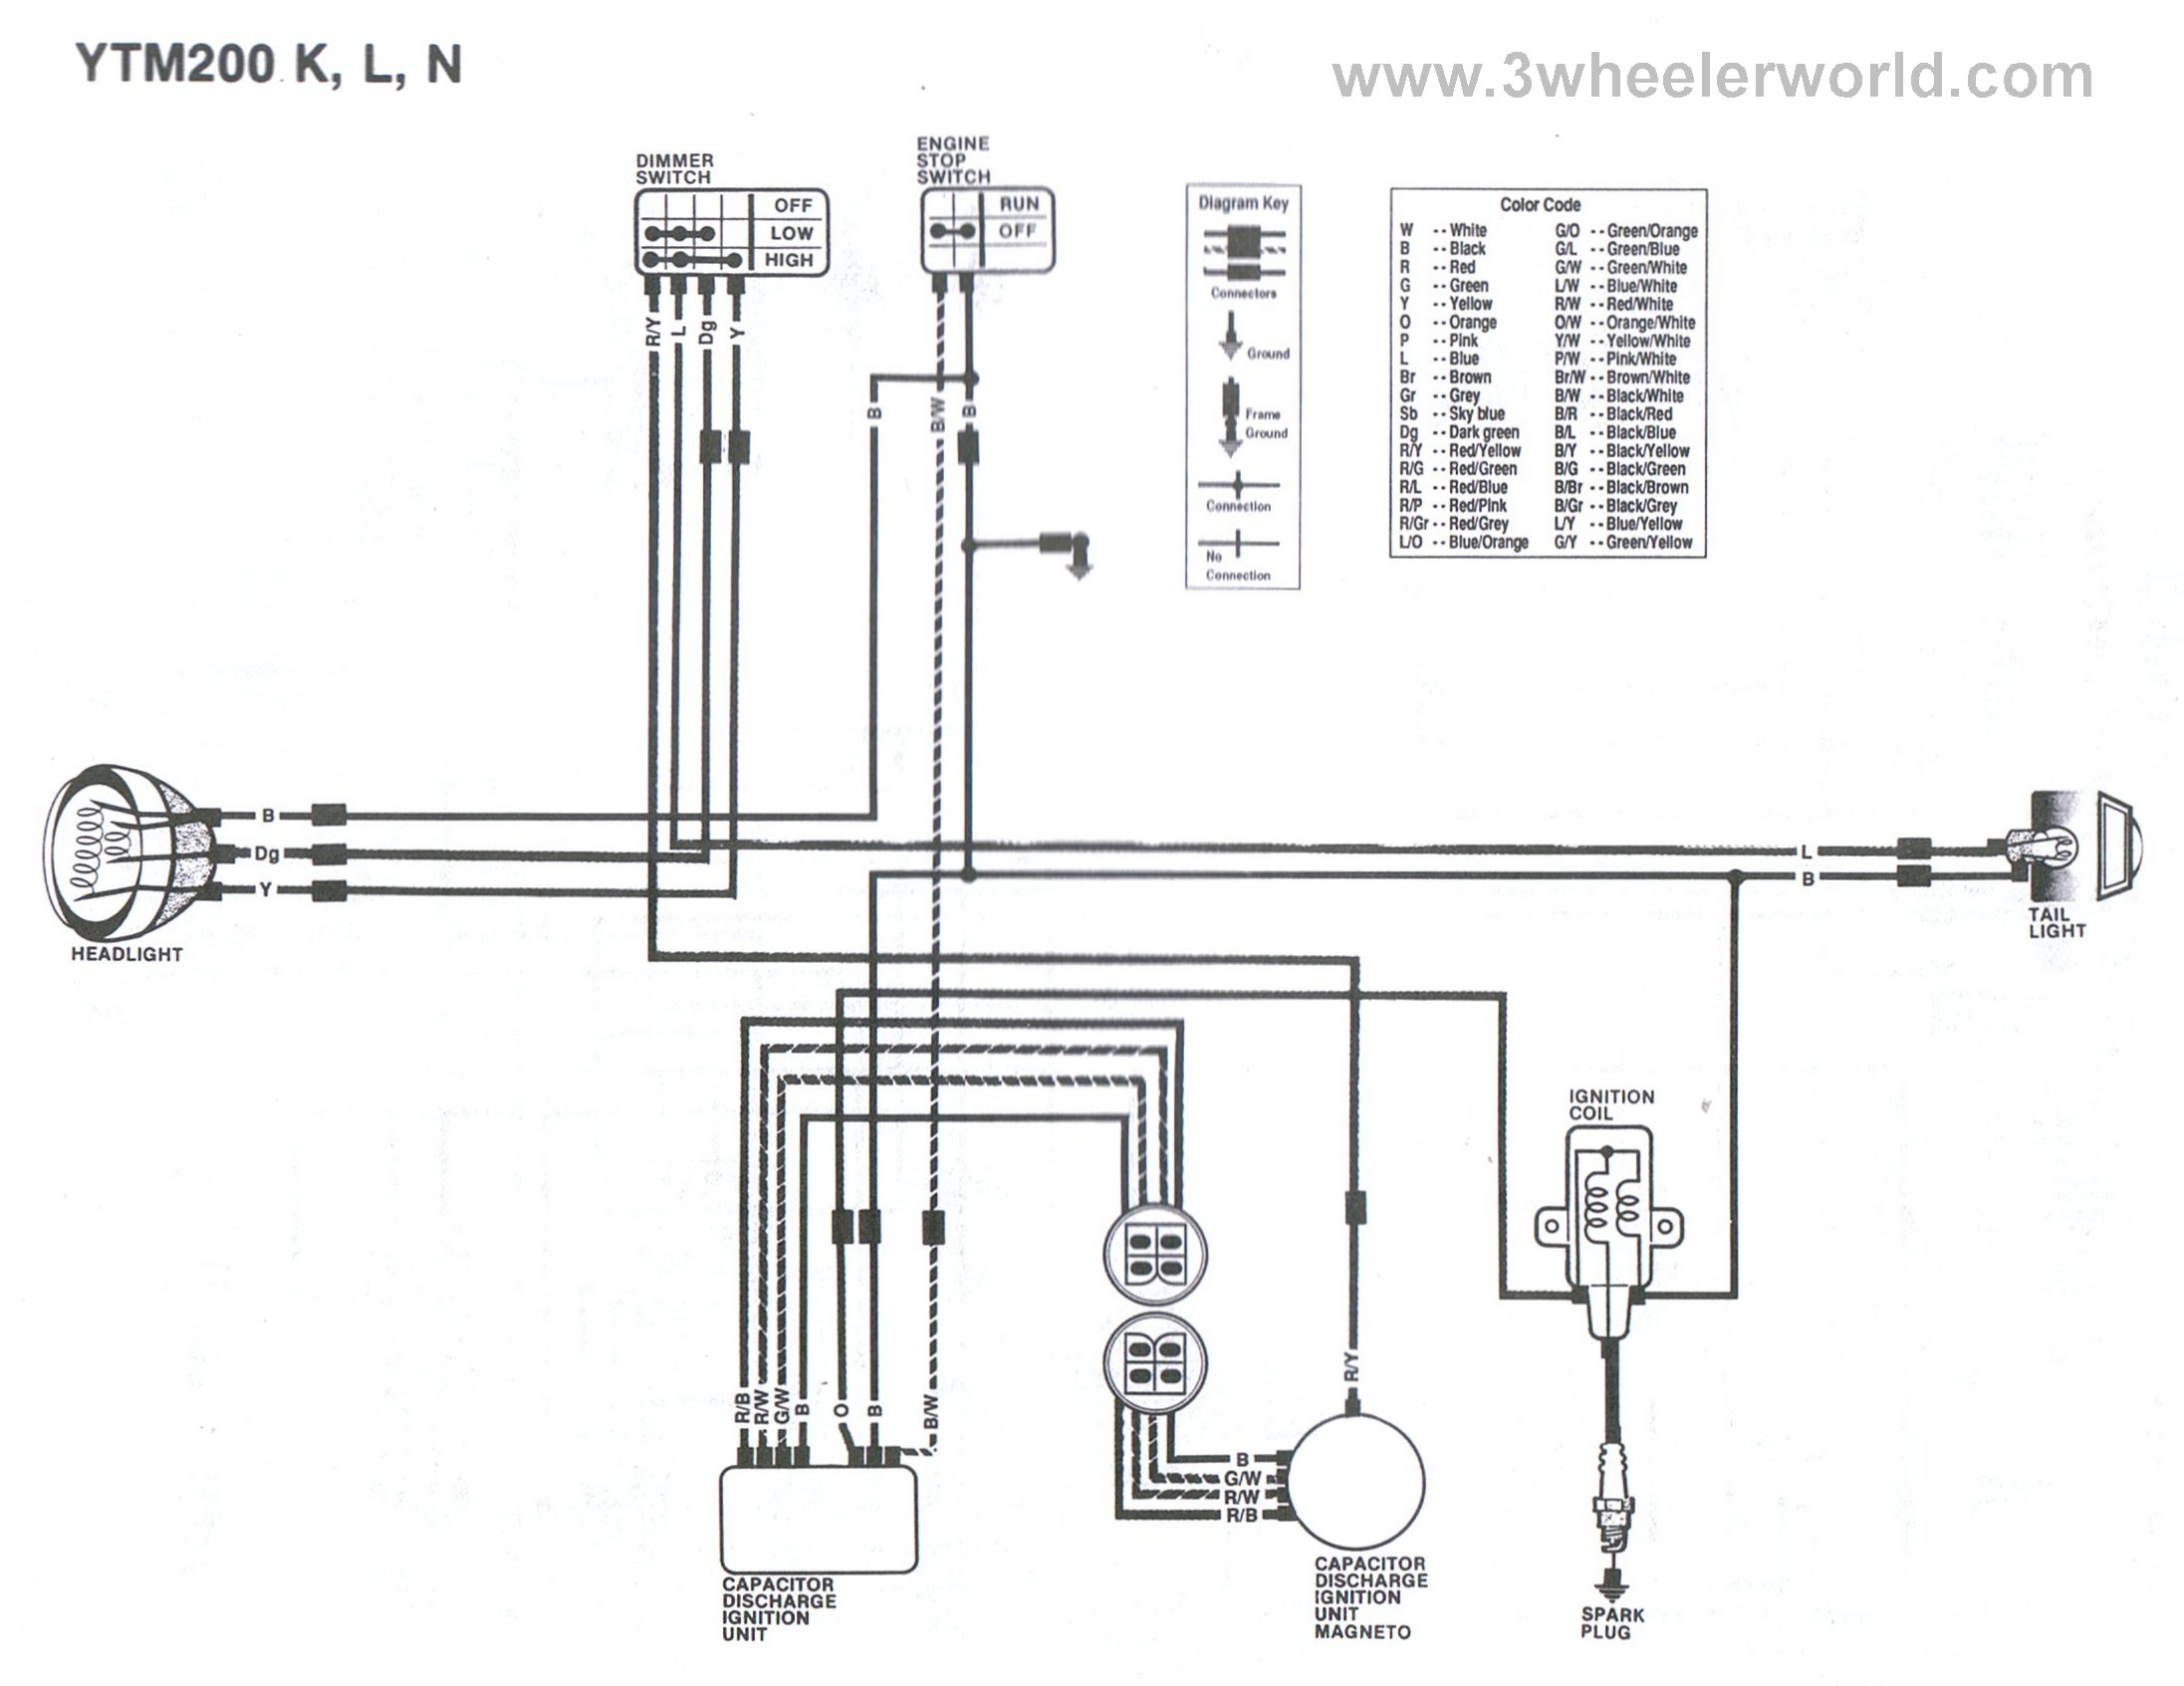 YTM200KLN dr250 wiring diagram wiring diagram simonand 1982 suzuki gs1100 wiring diagram at reclaimingppi.co